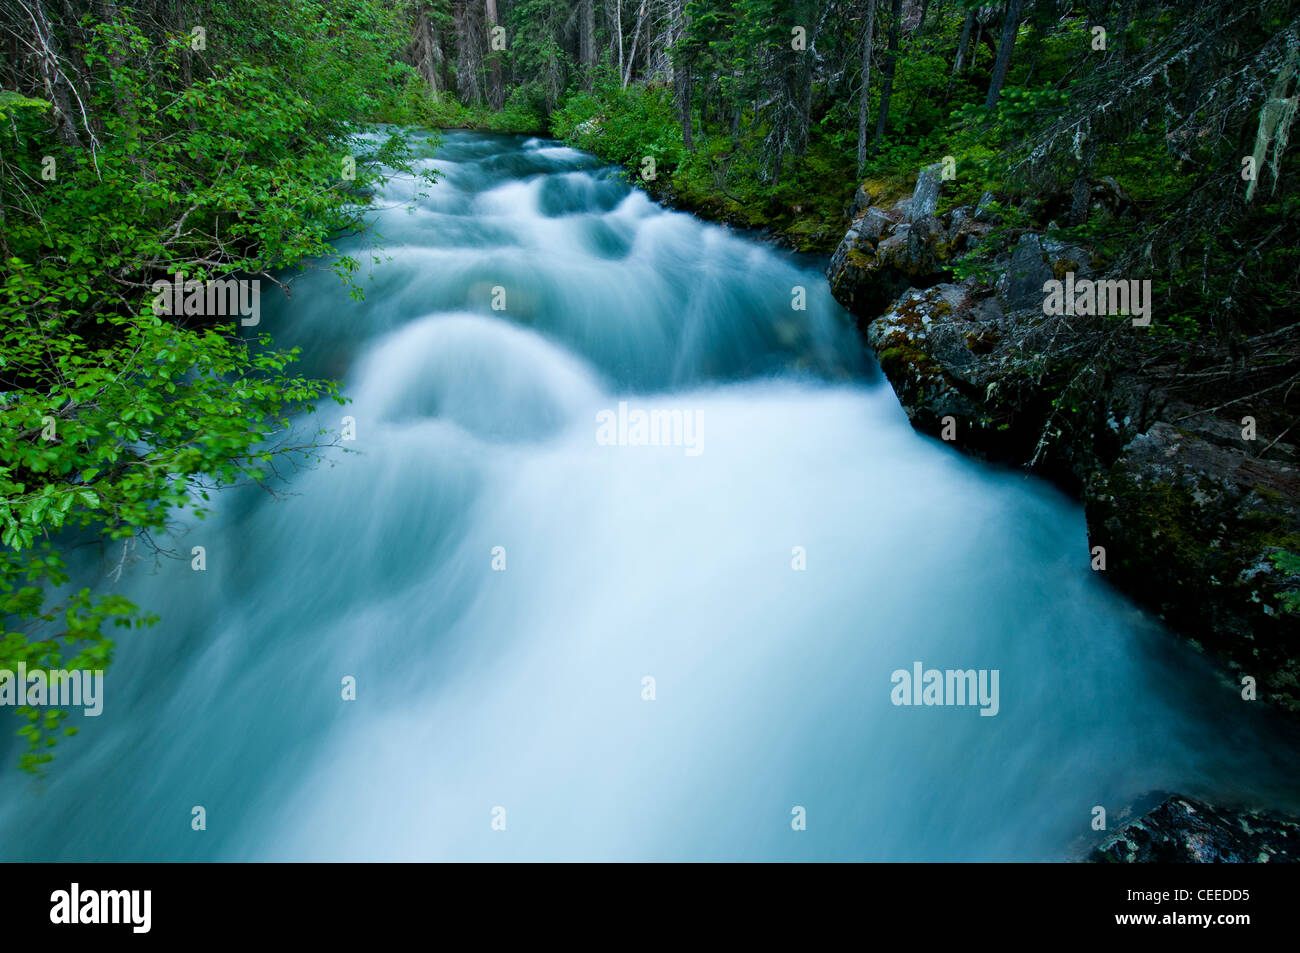 The Lostine River in the Eagle Cap Wilderness in the Wallowa-Whitman National Forest in northeast Oregon - Stock Image